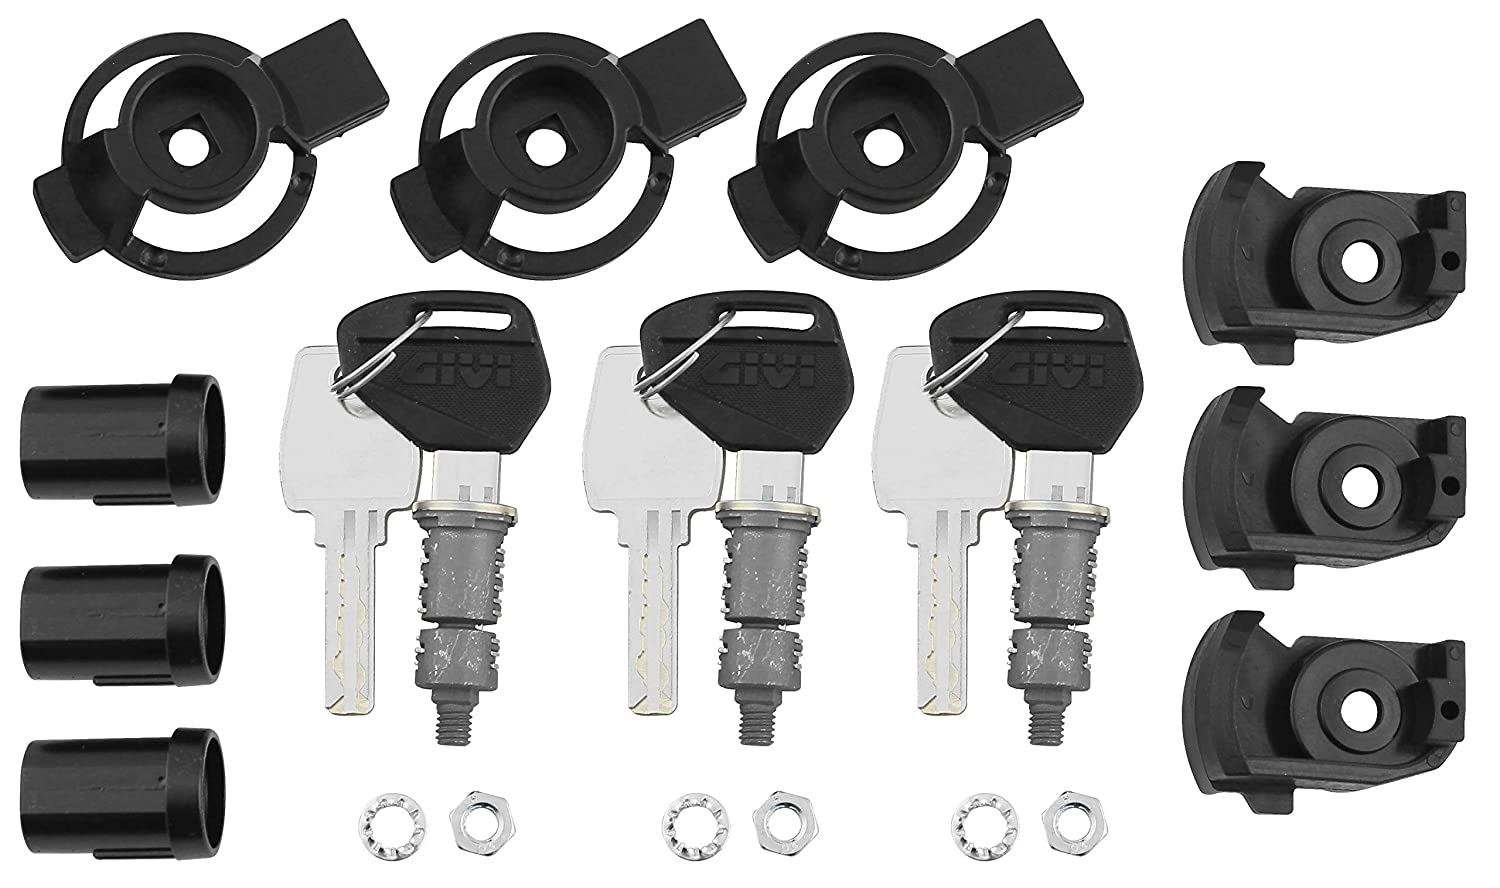 Givi SL103 security lock set (3 locks)